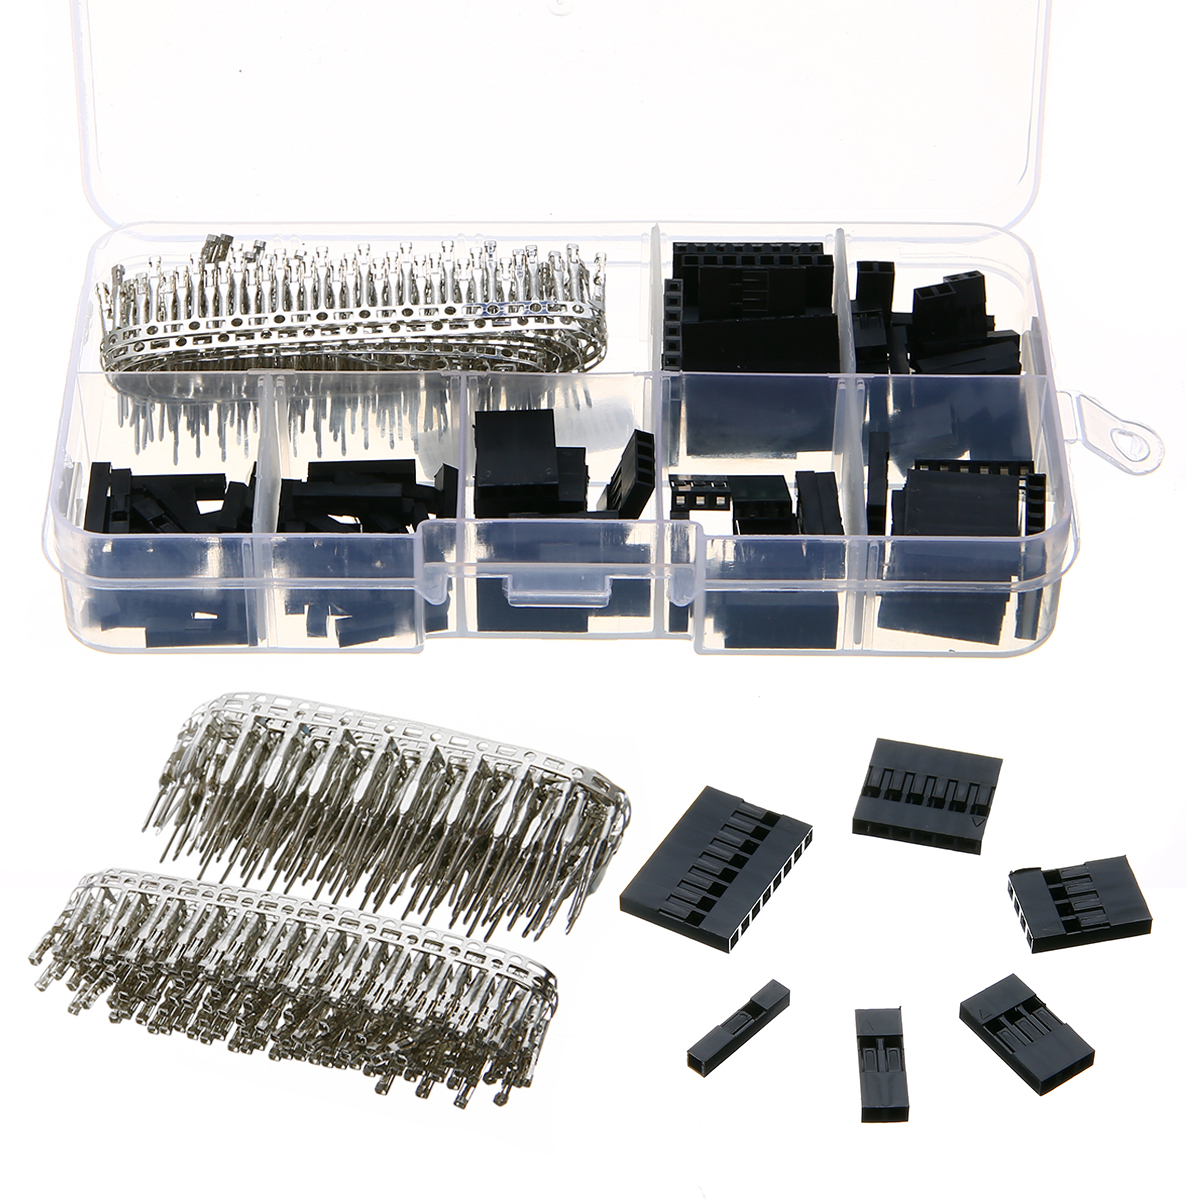 370pcs 2.54mm Dupont Crimp Pin Connector Header Jumper Wire Terminal Housing Kit with Box 18-26AWG 620pcs dupont wire cable jumper pin header connector housing kit male crimp pins female pin connector terminal pitch with box